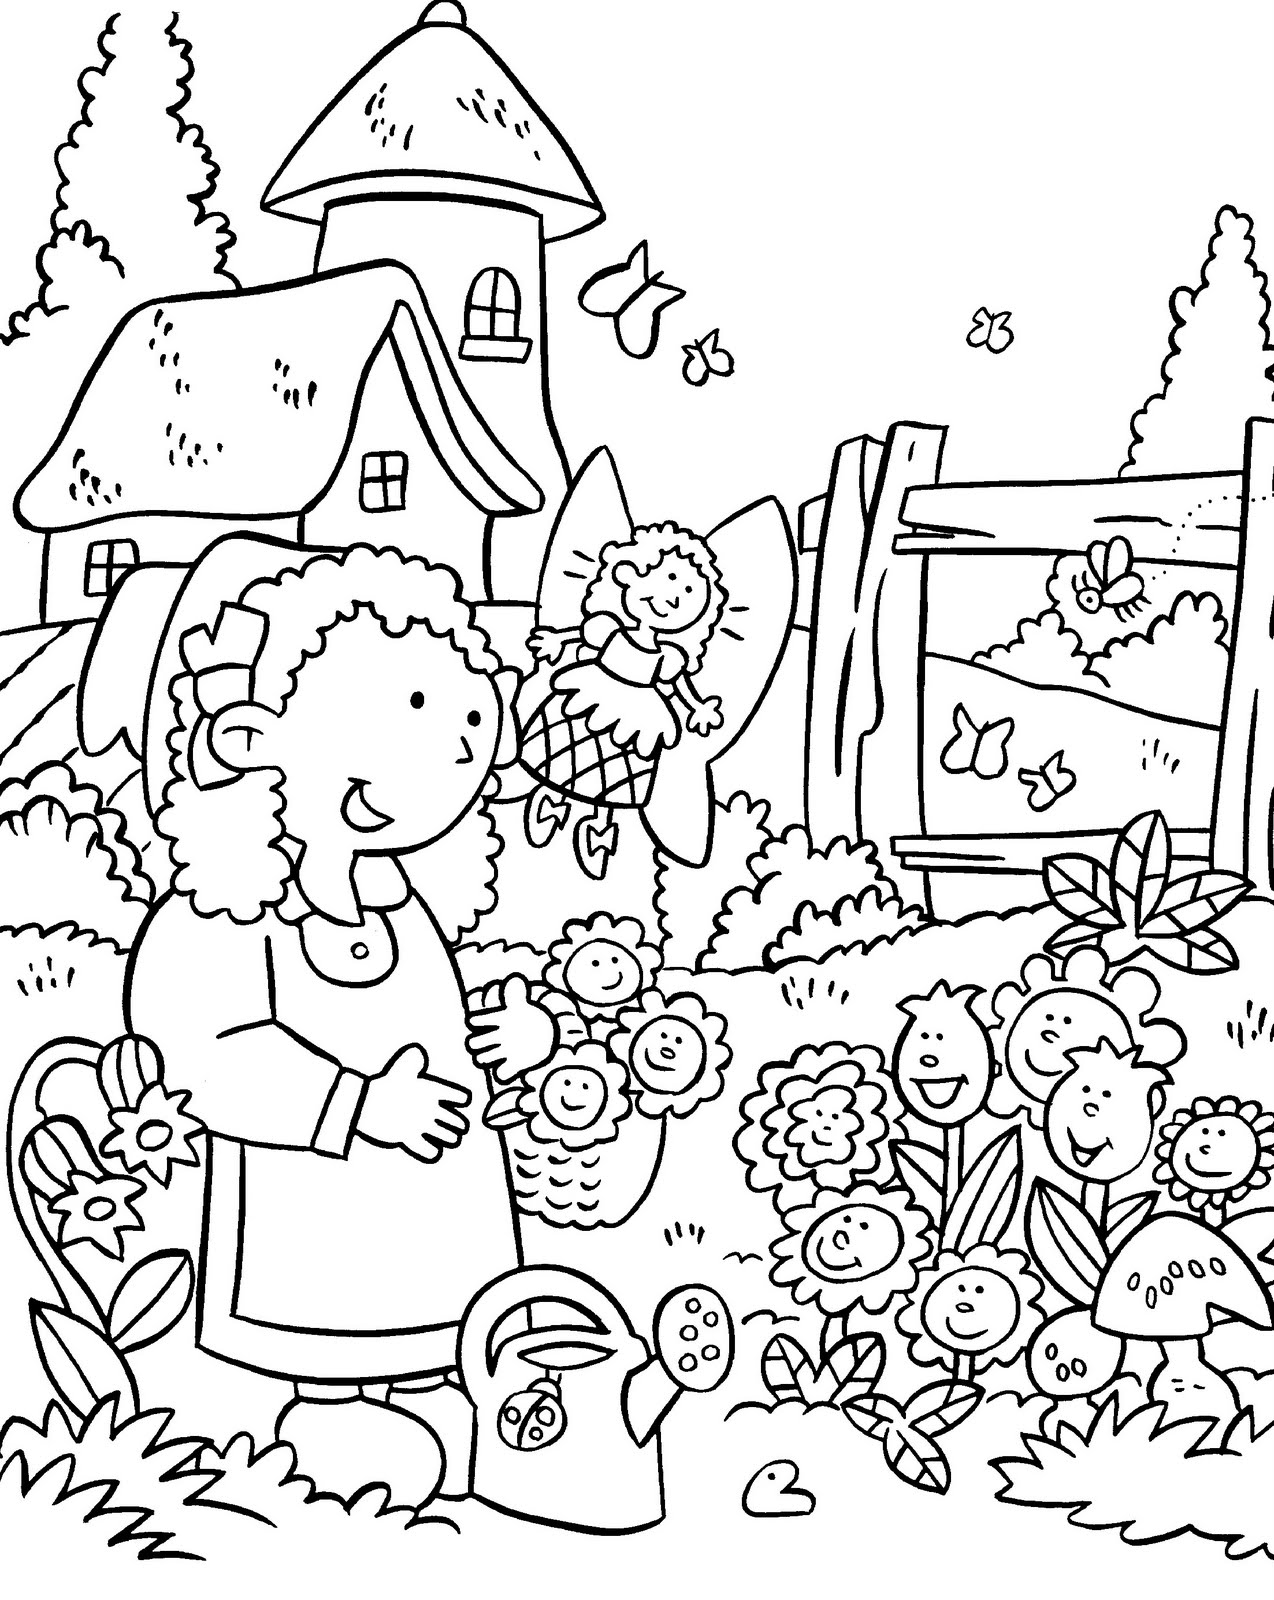 1274x1600 Garden Coloring Pages Flower To Download And Print For Free Garden